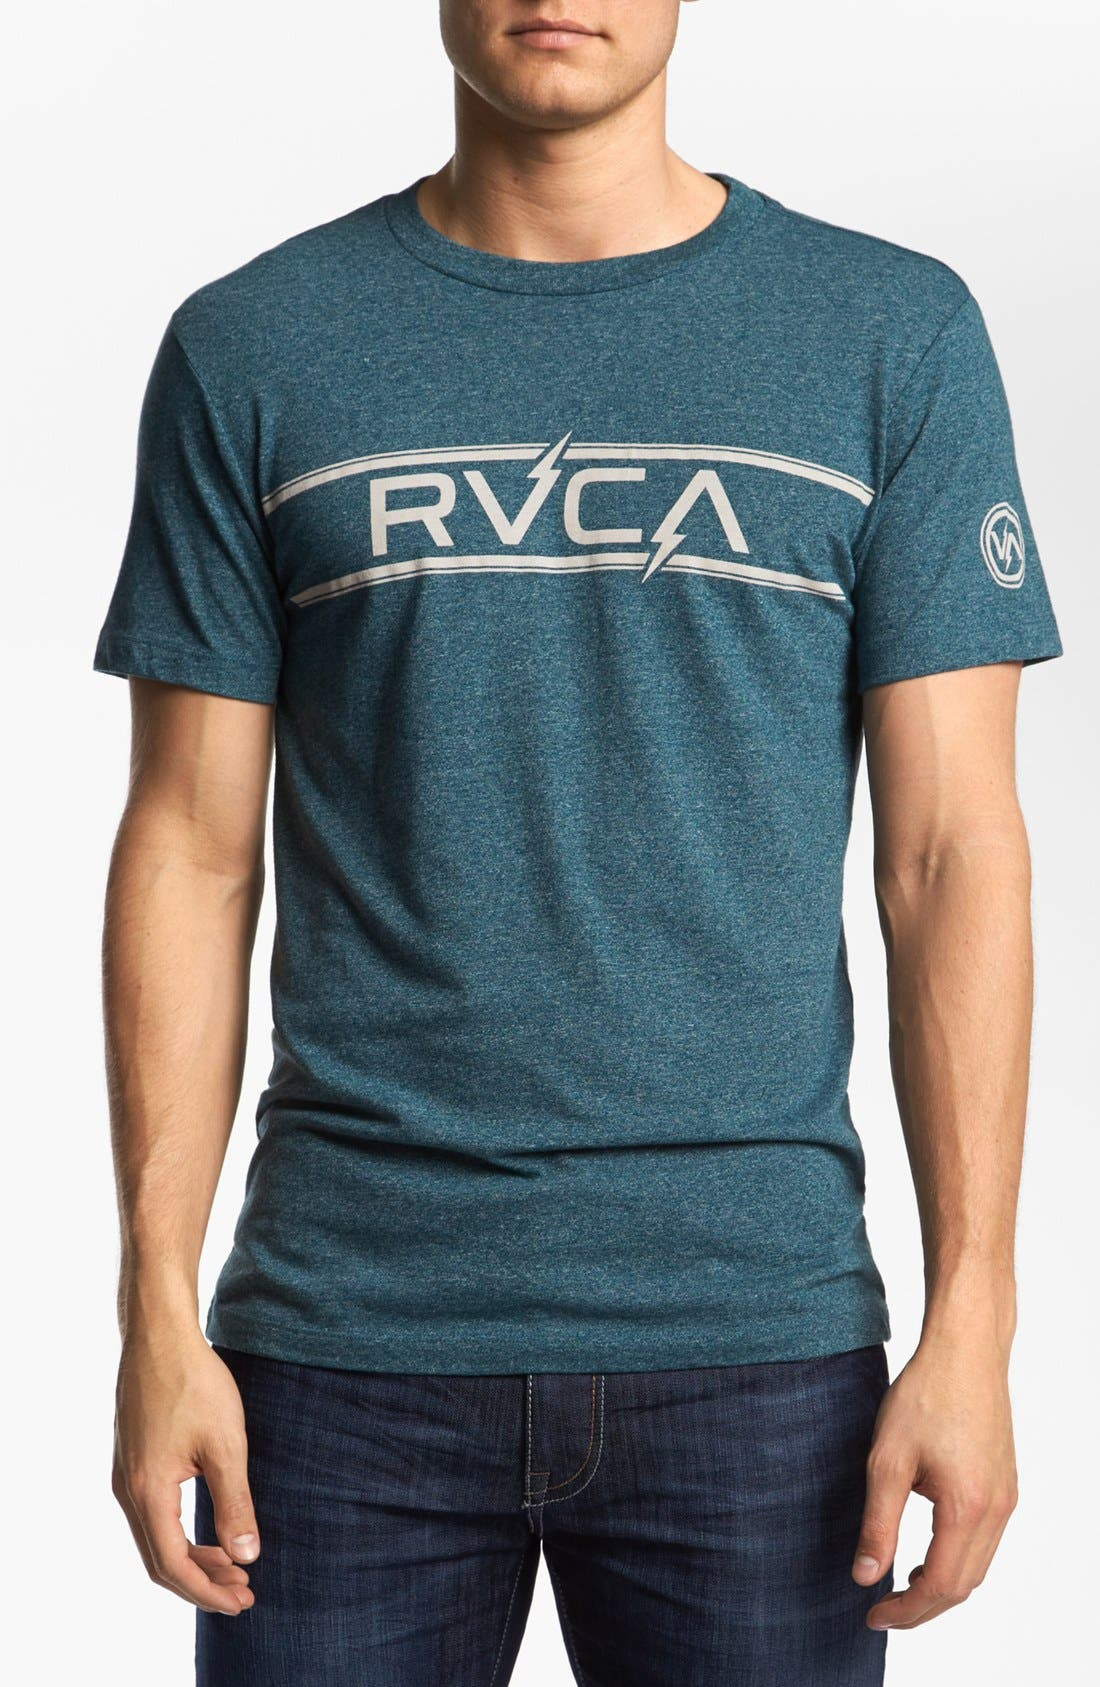 Main Image - RVCA 'Bolts' T-Shirt